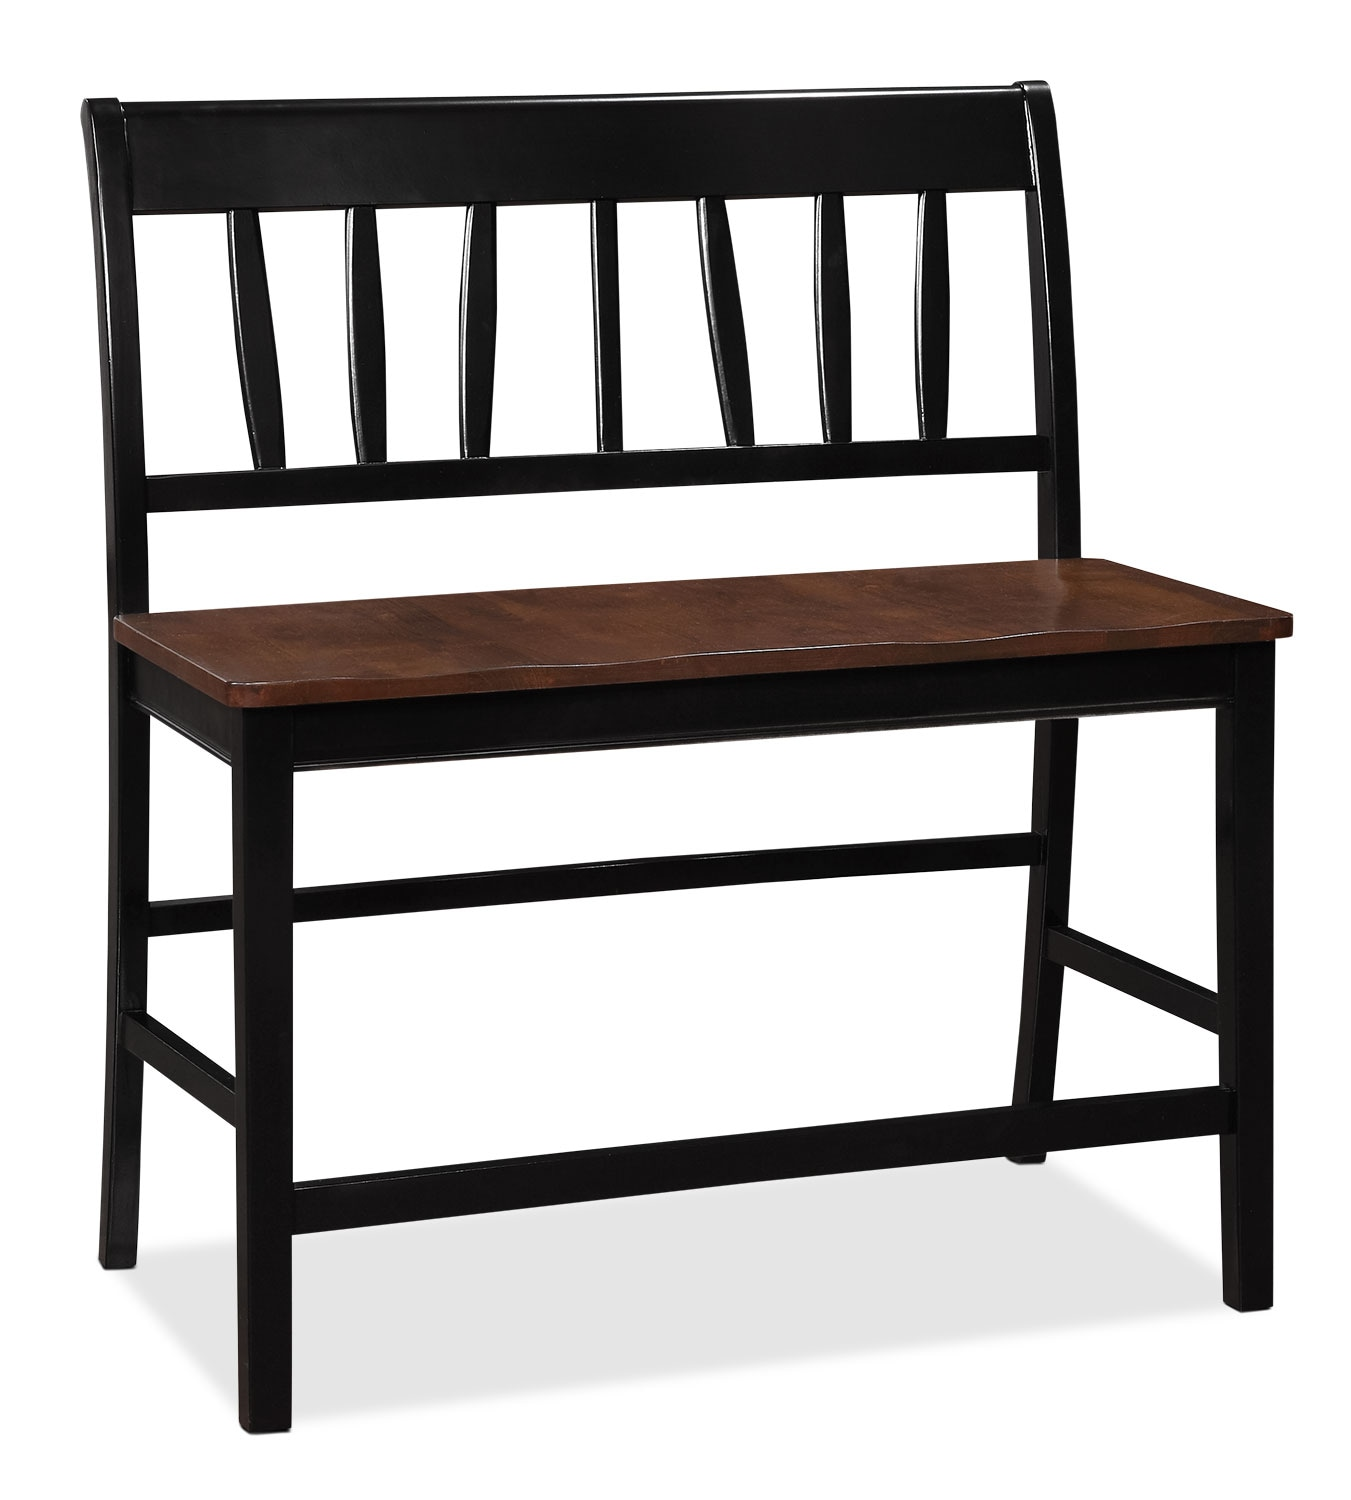 Dining Room Furniture - Nyla Counter-Height Dining Bench – Black and Cherry